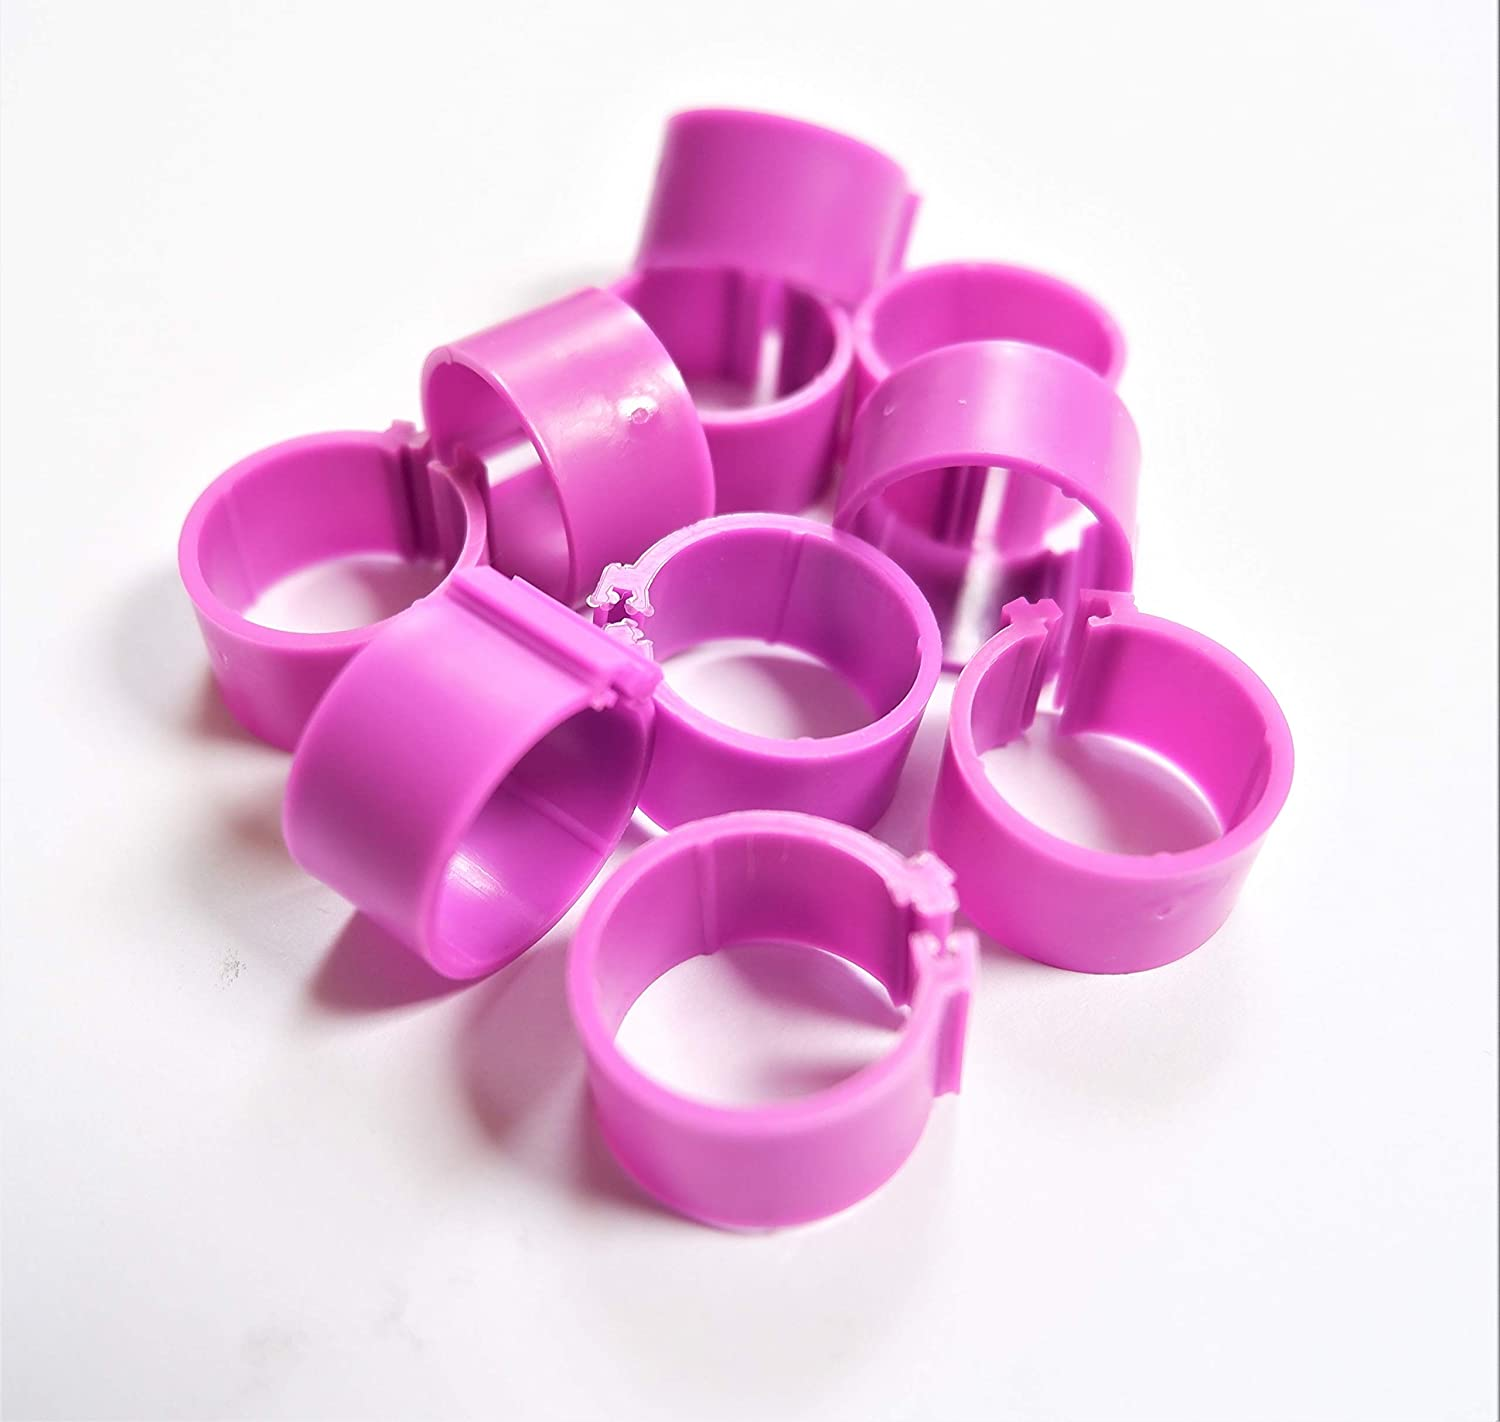 Pack of 10 x 16mm Chicken Poultry Flat Leg Rings in PURPLE Free Postage